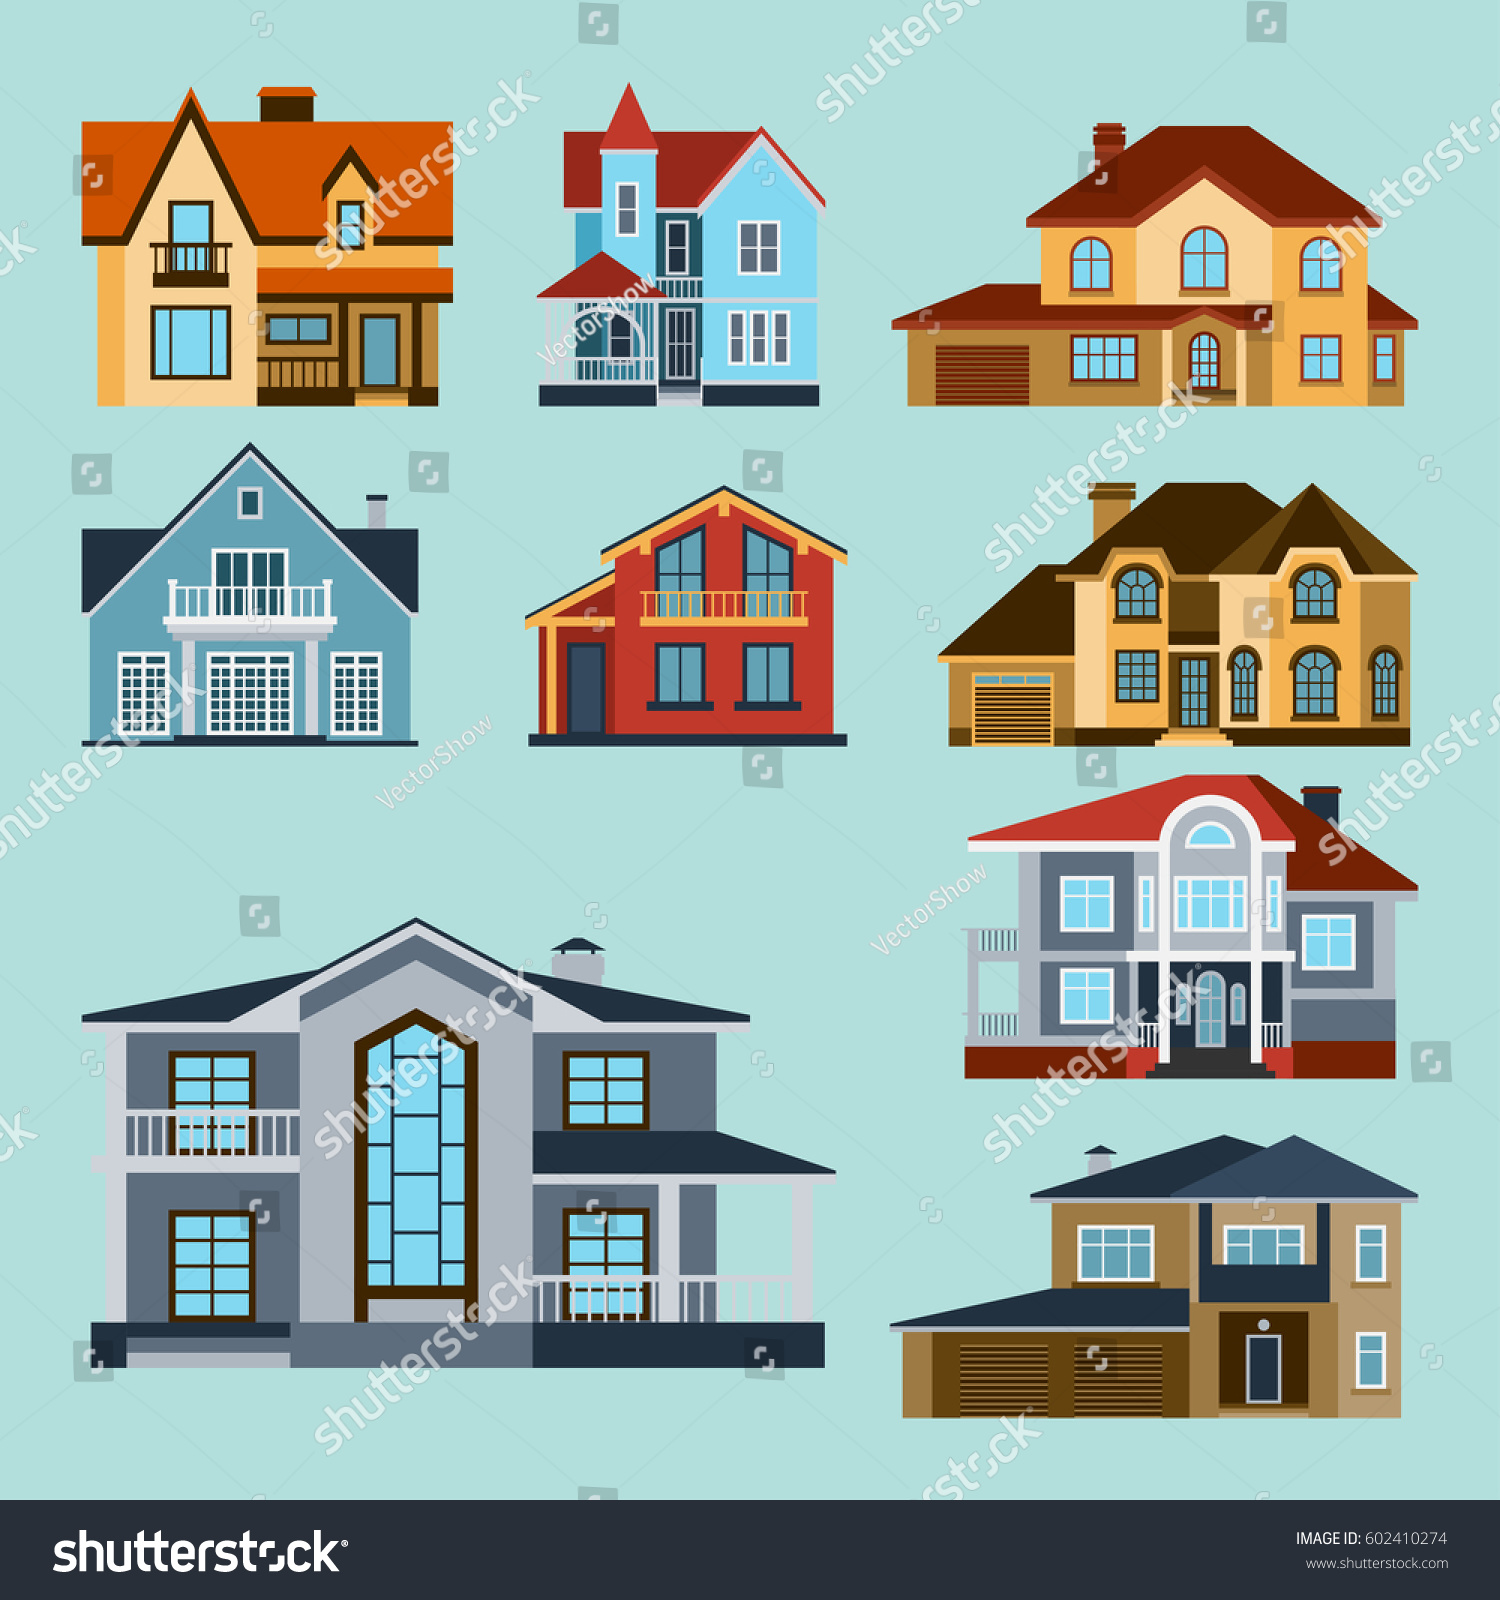 Houses front view vector illustration building stock for Residential home builder